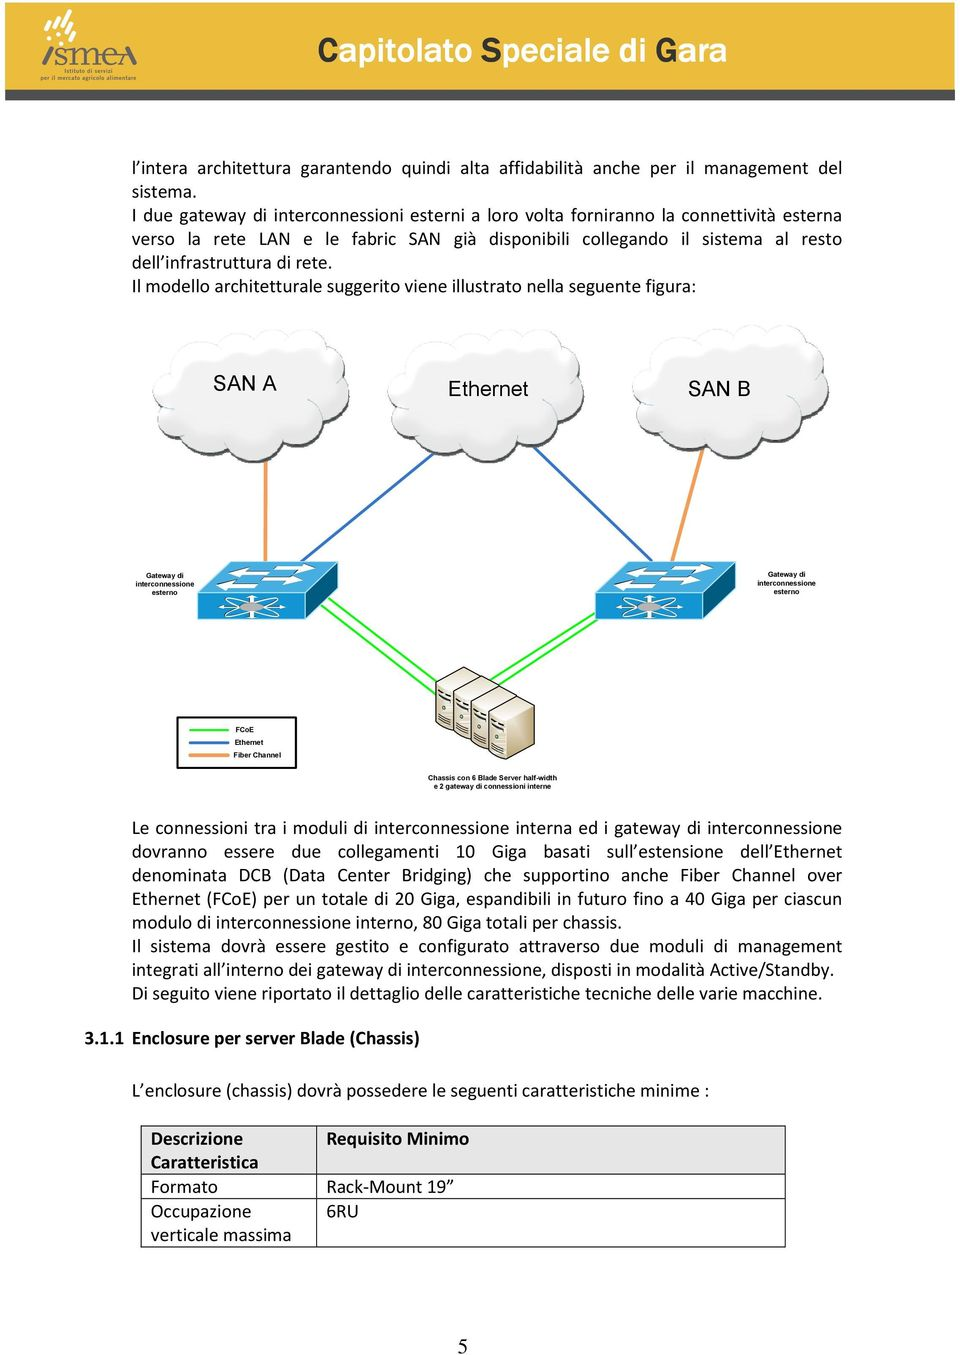 Il modello architetturale suggerito viene illustrato nella seguente figura: SAN A Ethernet SAN B Gateway di interconnessione esterno Gateway di interconnessione esterno FCoE Ethernet Fiber Channel